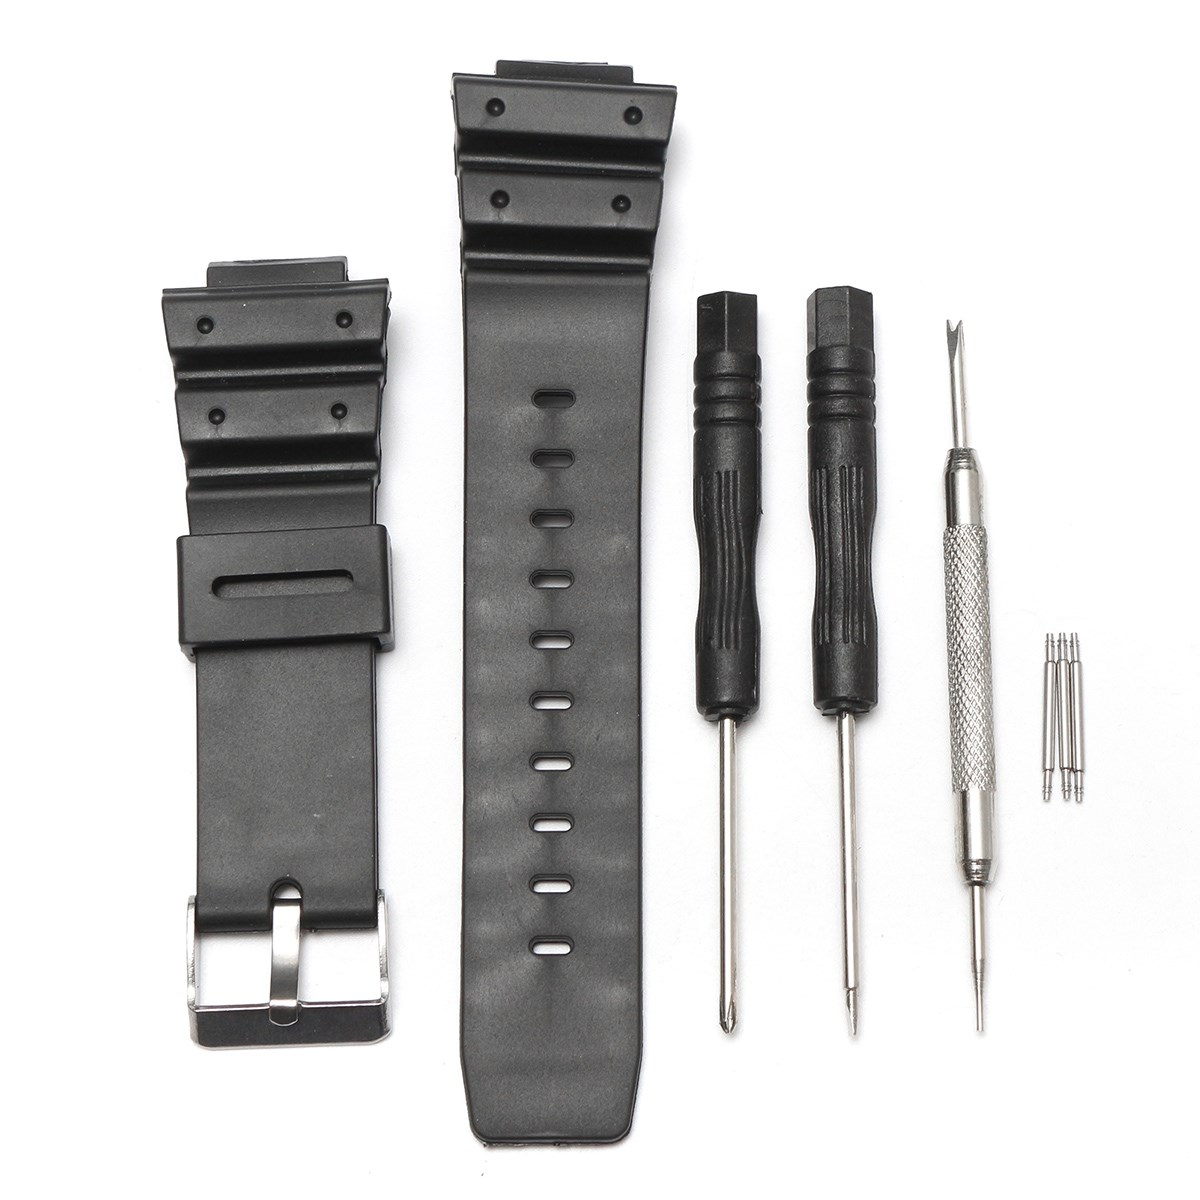 Rubber Watch Bands Strap Sport Waterproof 25mm Men Silicone Bracelet With Silver Steel Metal Needle Buckle For/Casio Accessories uyoung watchband for casio prg 130y prw 1500yj watch bands black silicone rubber strap climbing bracelet